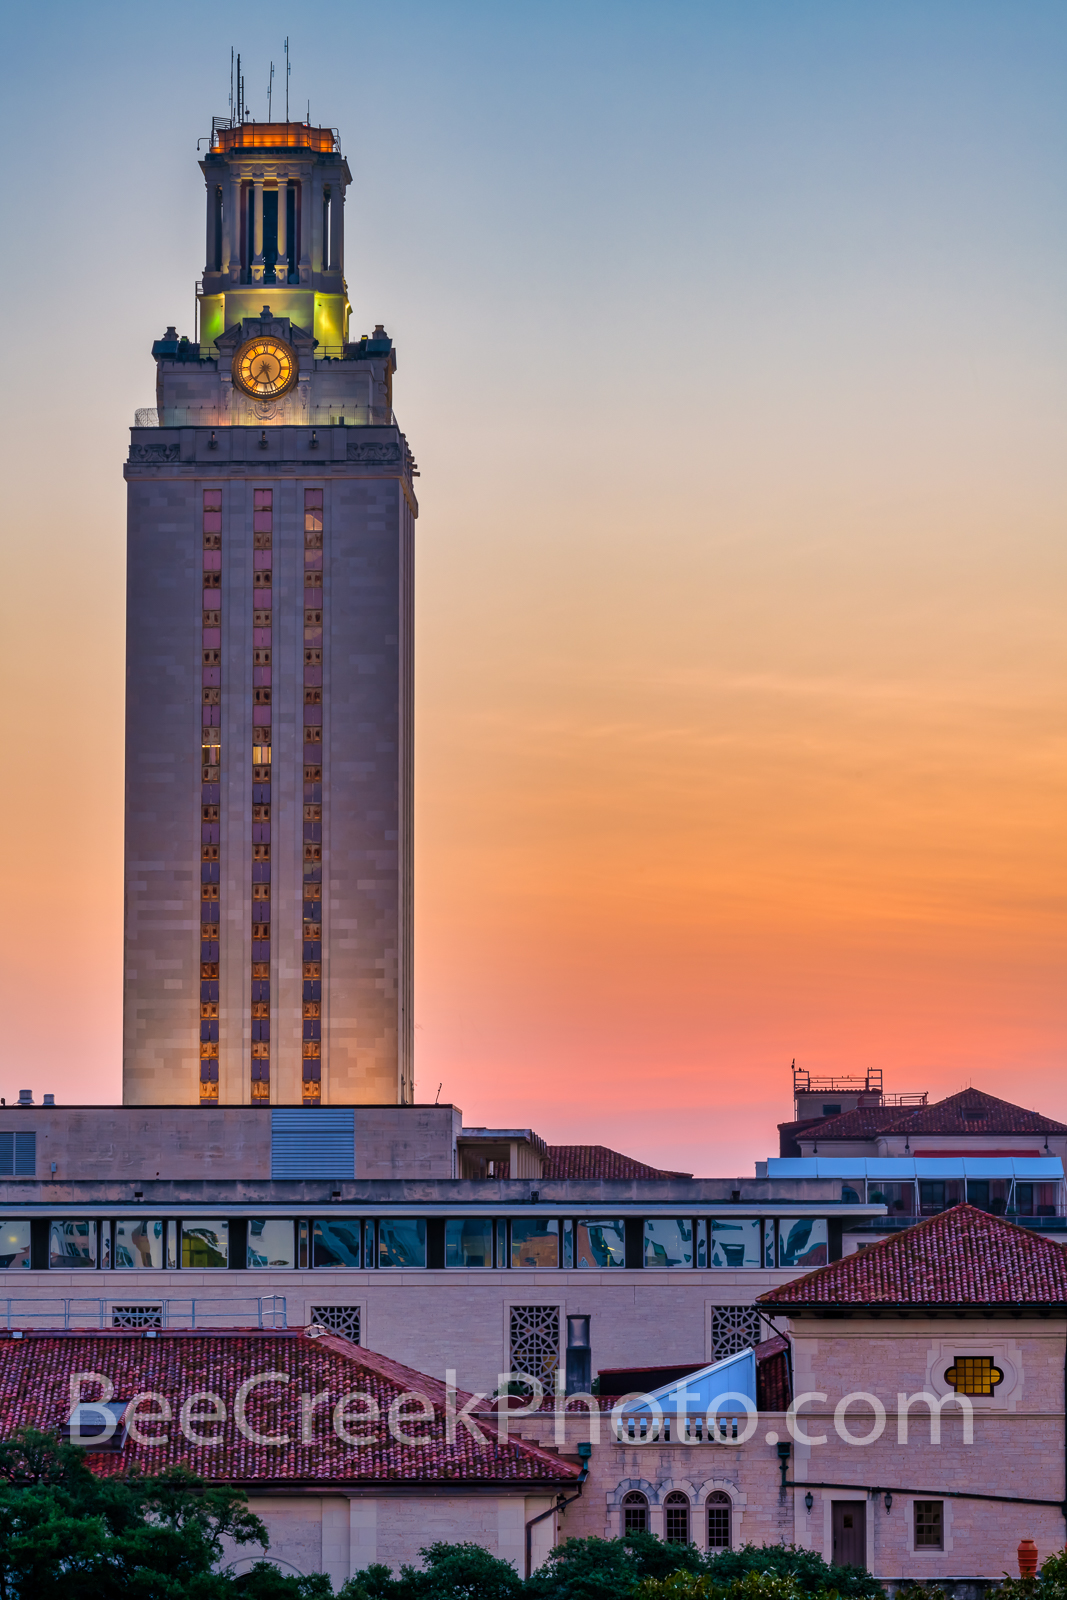 UT Tower Sunrise Vertical - We captured this U T Tower, Stadium and campus right at sunrise in a vertical format. The sky had...